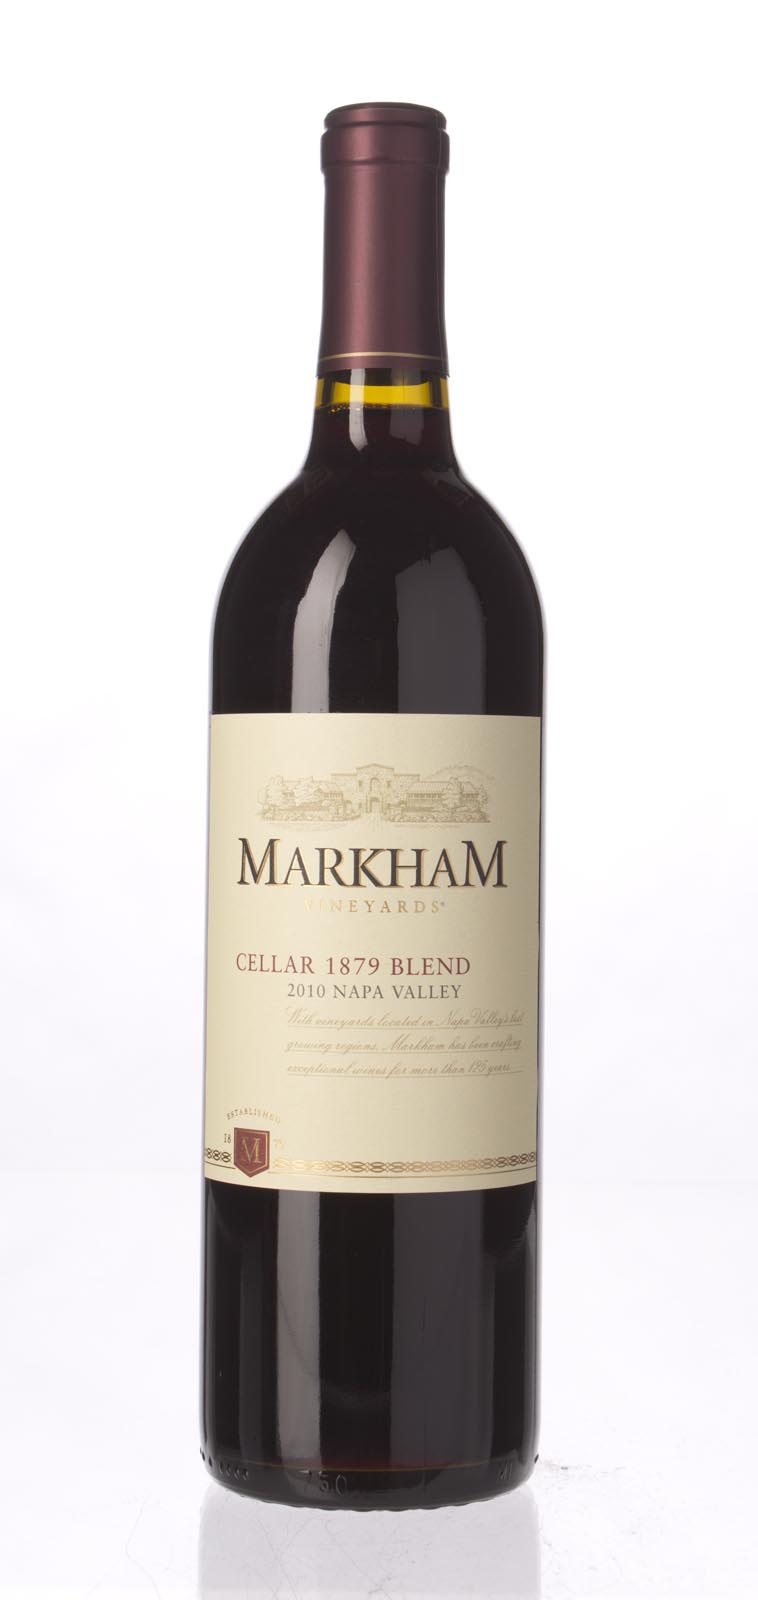 Markham Proprietary Red Blend Cellar 1879 2010, 750ml () from The BPW - Merchants of rare and fine wines.